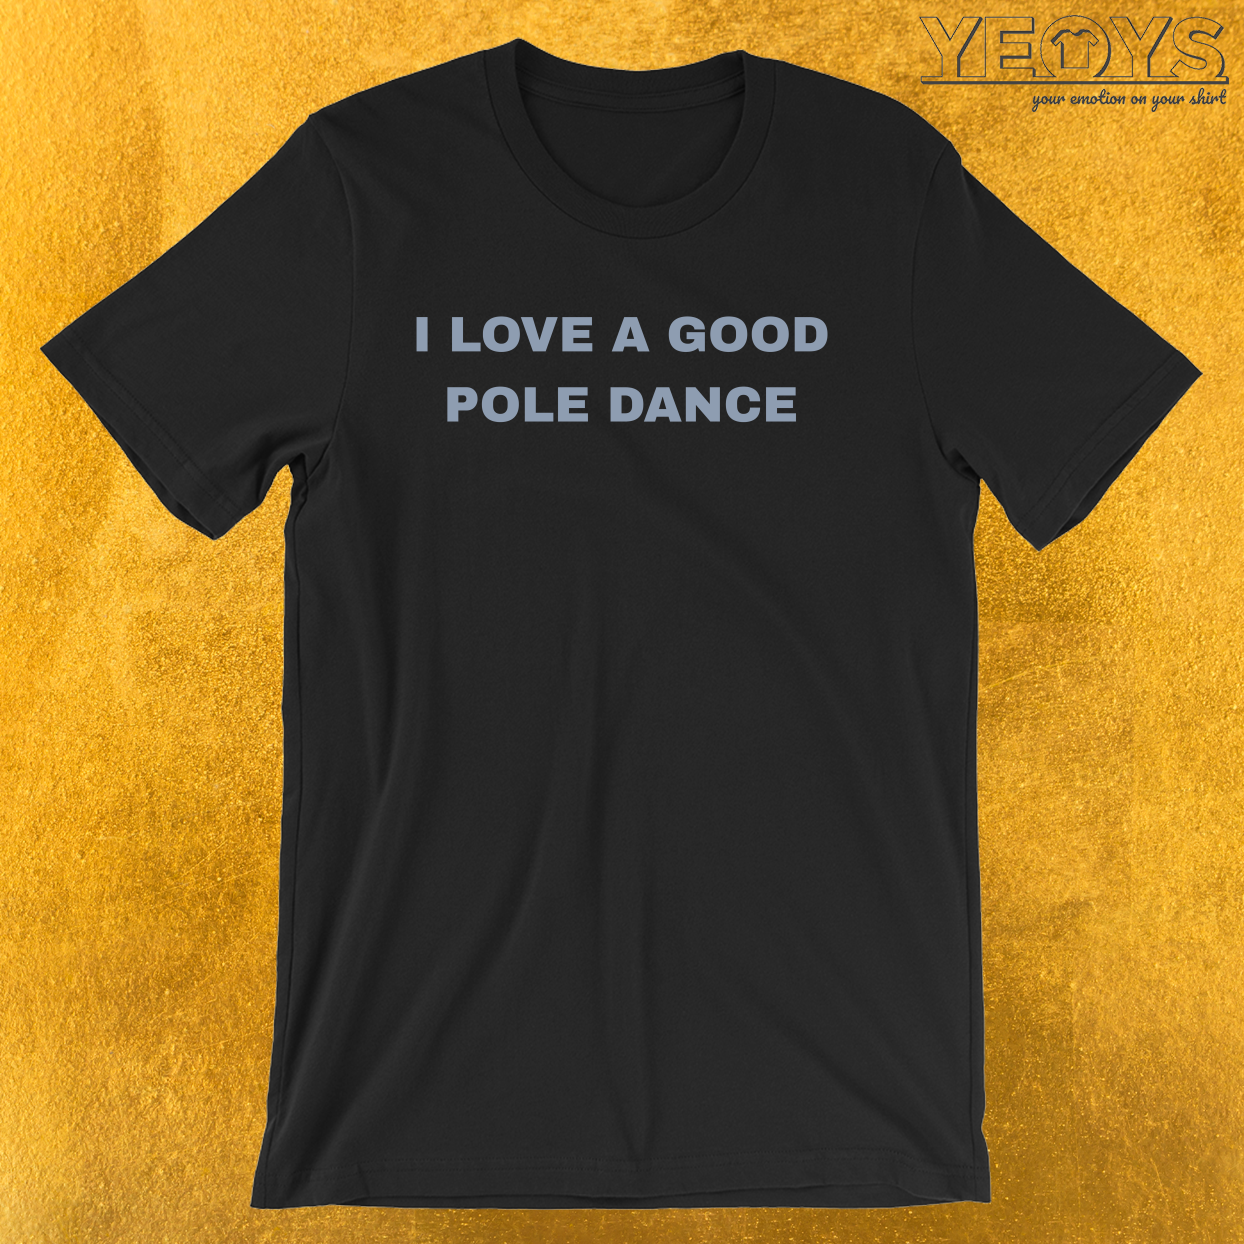 I Love A Good Pole Dance – Fishing Pole Dance Tee